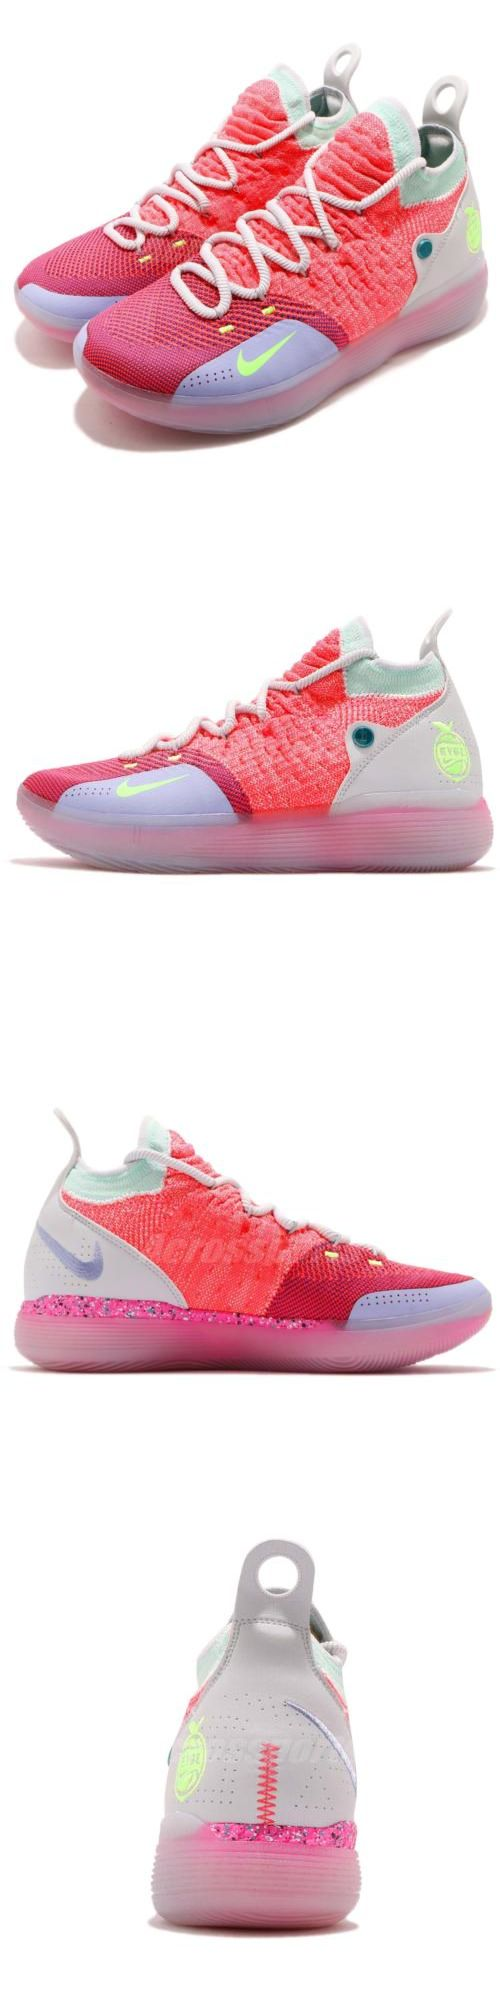 e5eda4e906a Clothing Shoes and Accessories 158963  Nike Zoom Kd 11 Ep Xi Eybl Peach Jam  Hot Punch Kevin Durant Men Shoes Ao2605-600 -  BUY IT NOW ONLY   159.99 on  eBay!